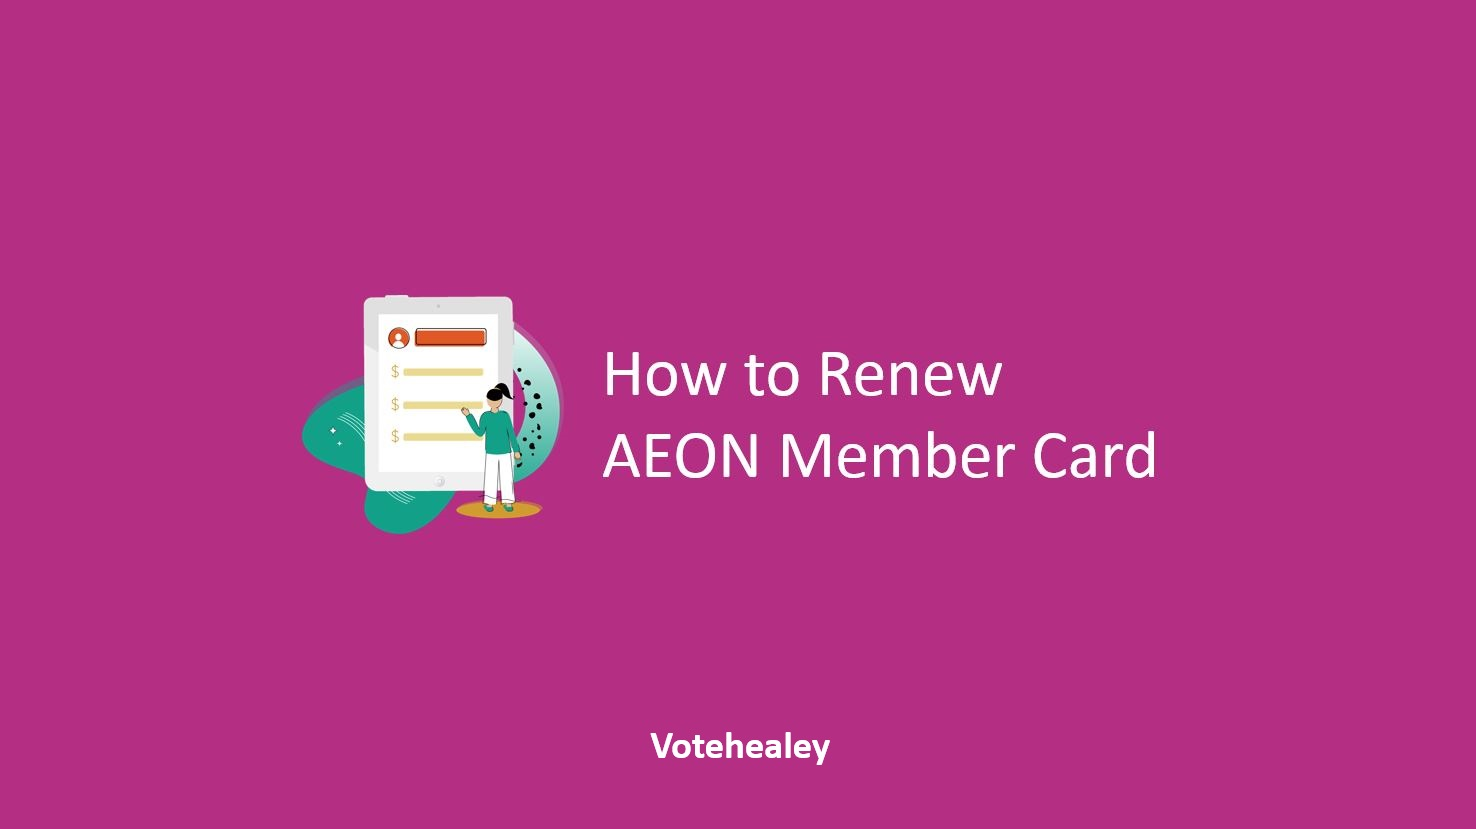 How to Renew AEON Member Card